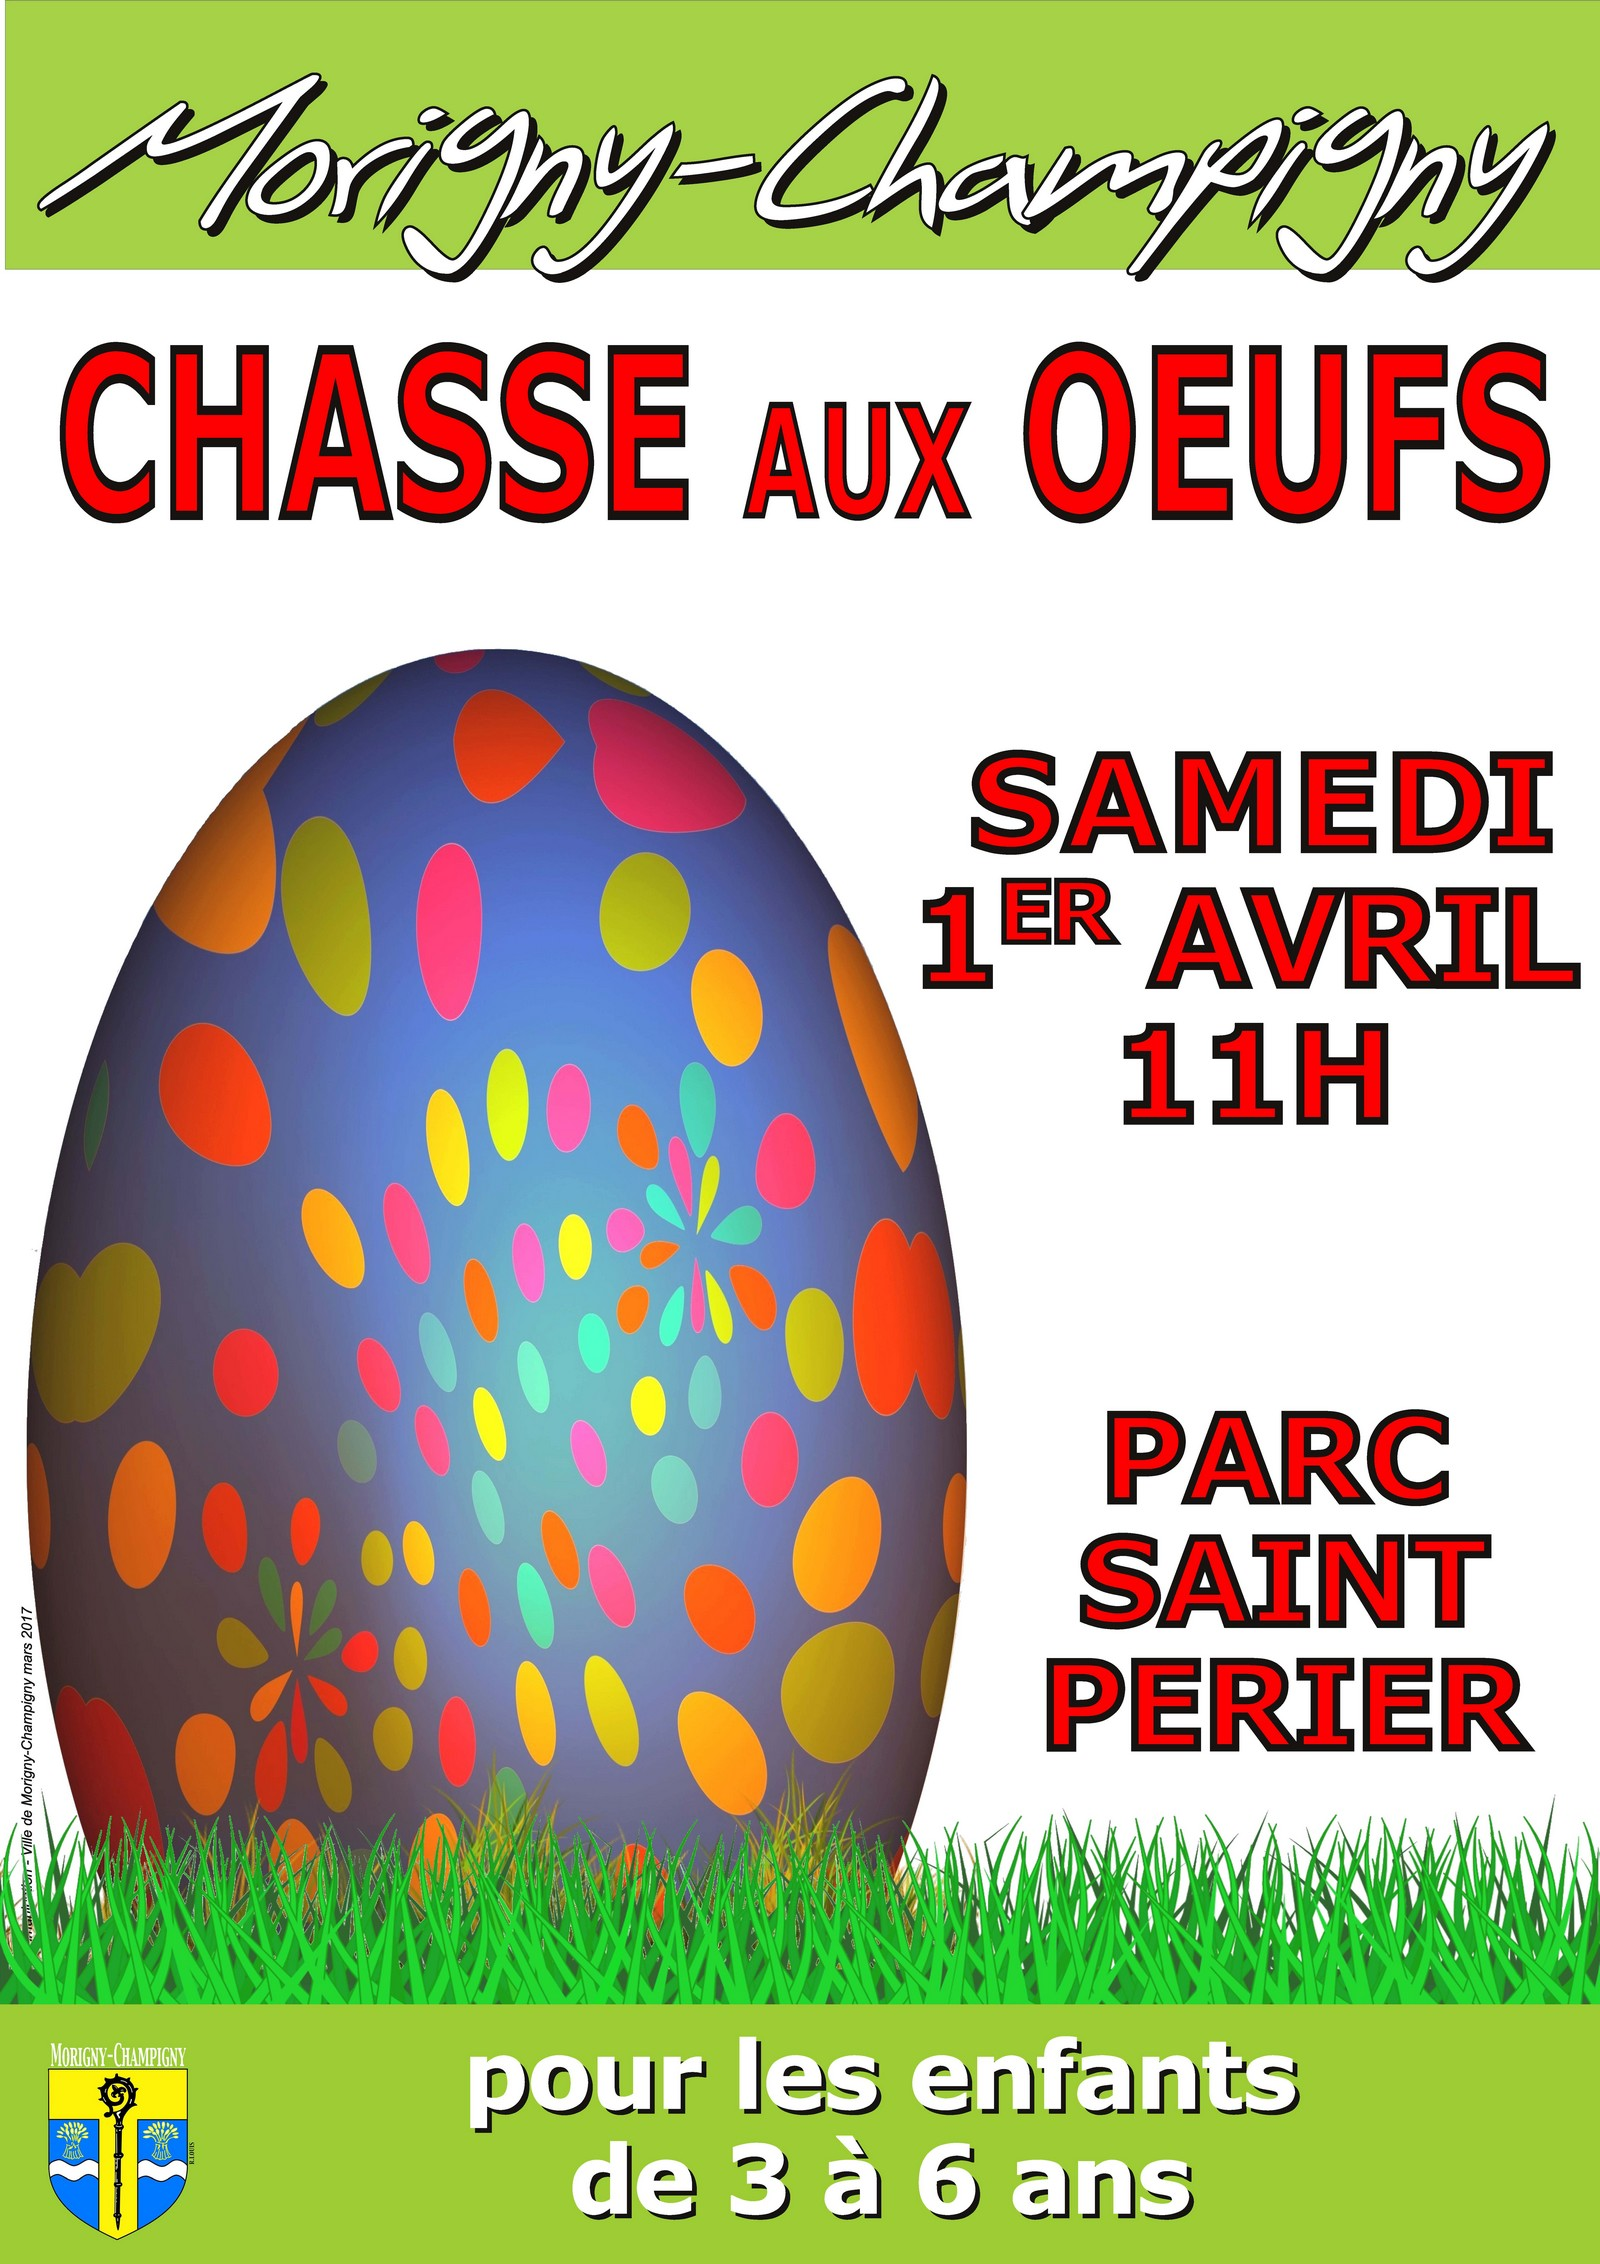 Chasse aux oeufs 01.04.17reduc.bis